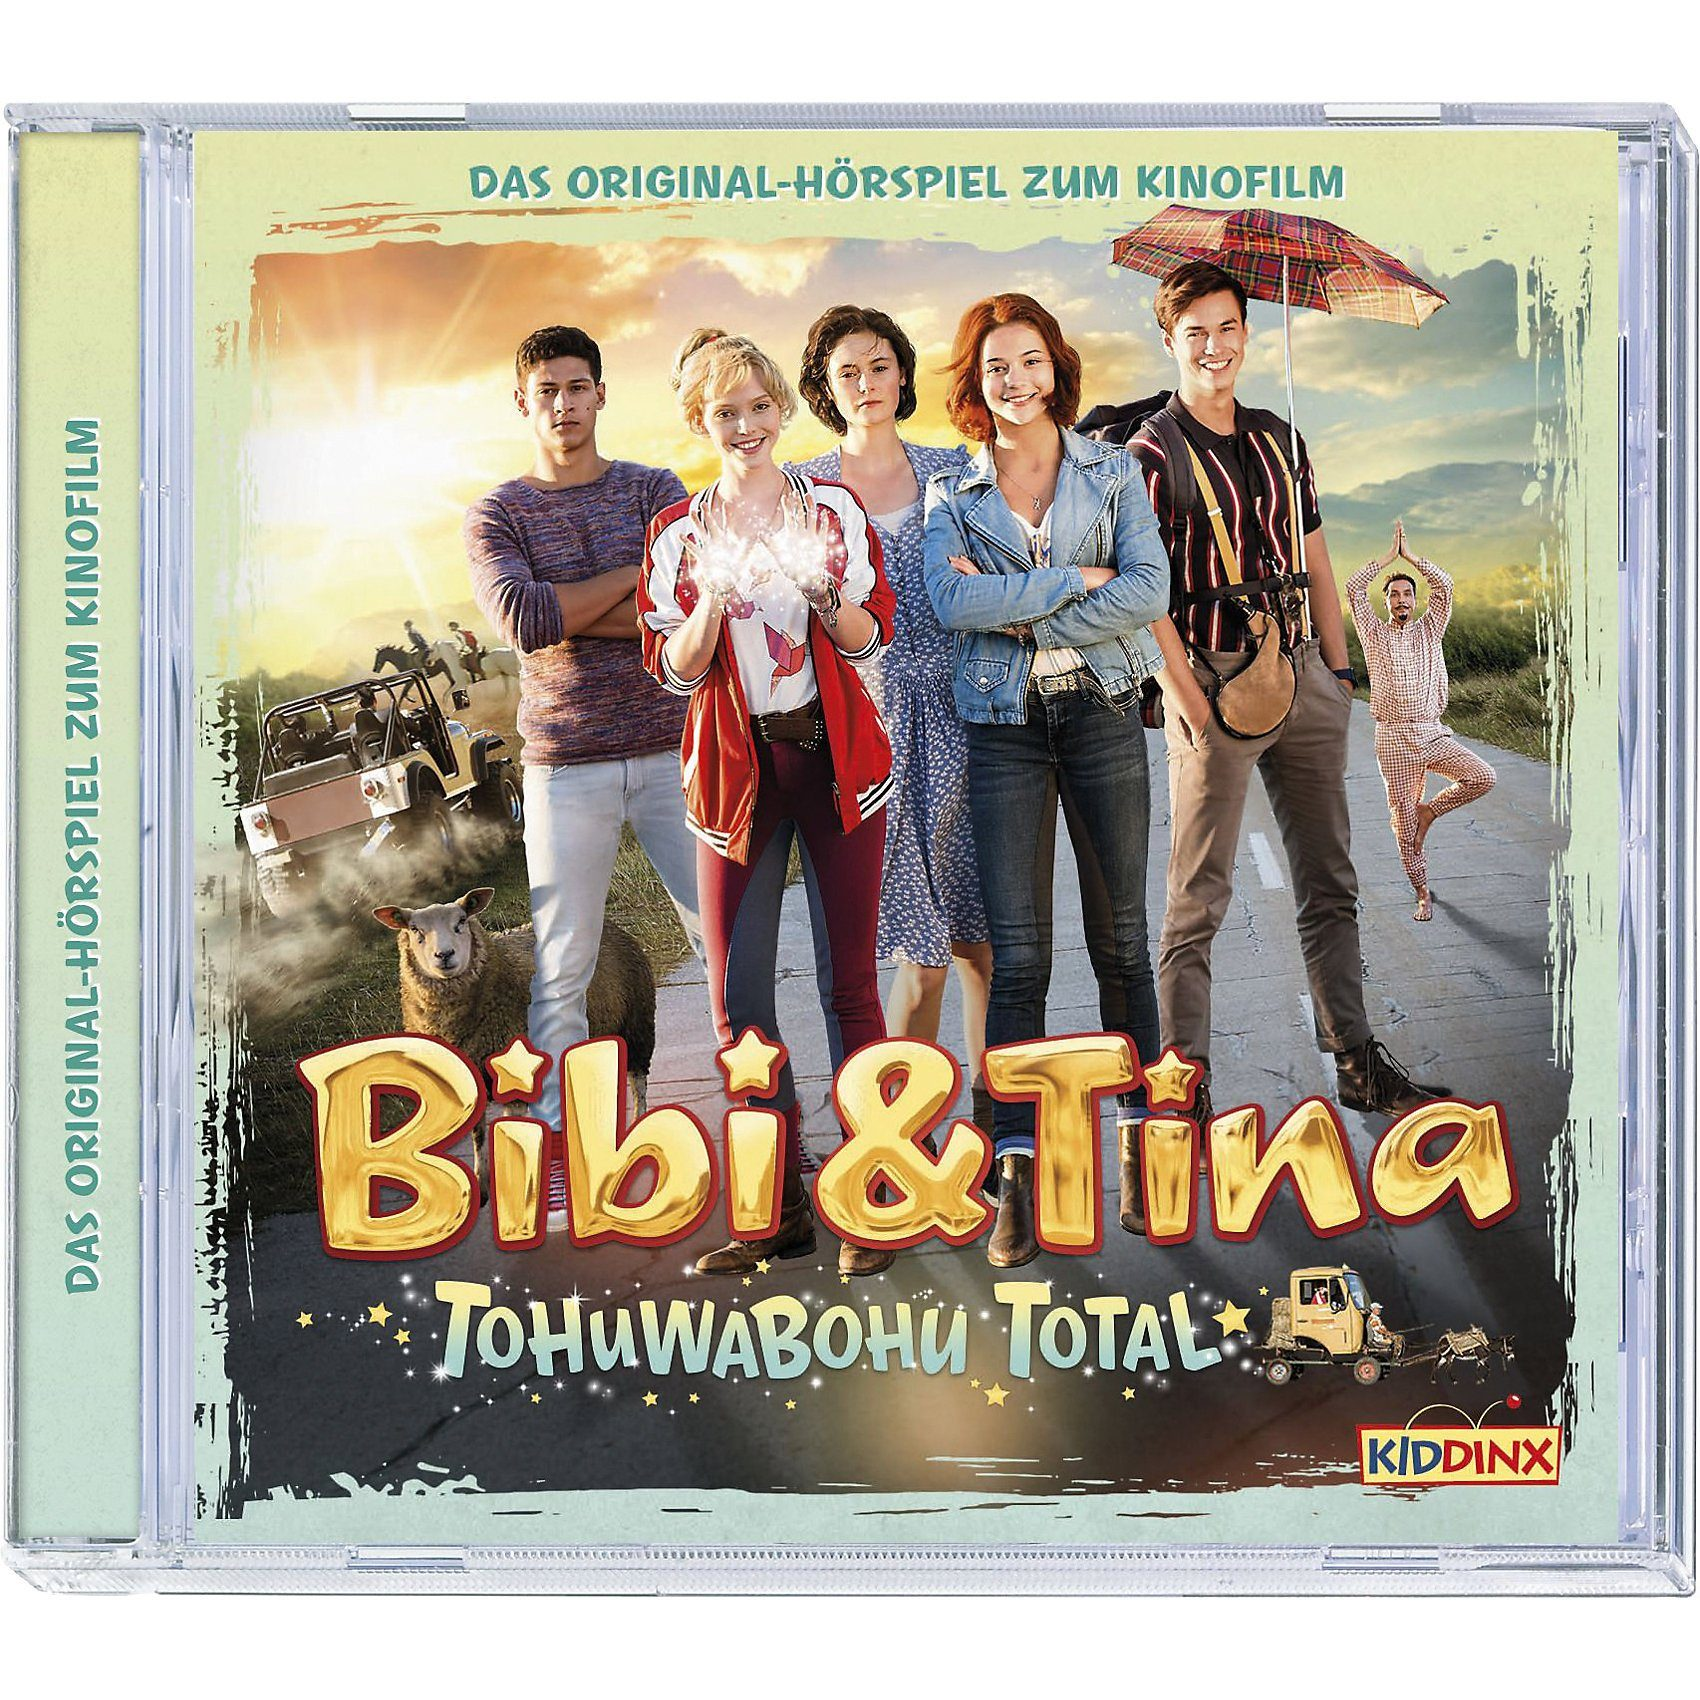 Kiddinx CD Bibi & Tina 4 - Tohuwabohu Total - Original Hörspiel zum